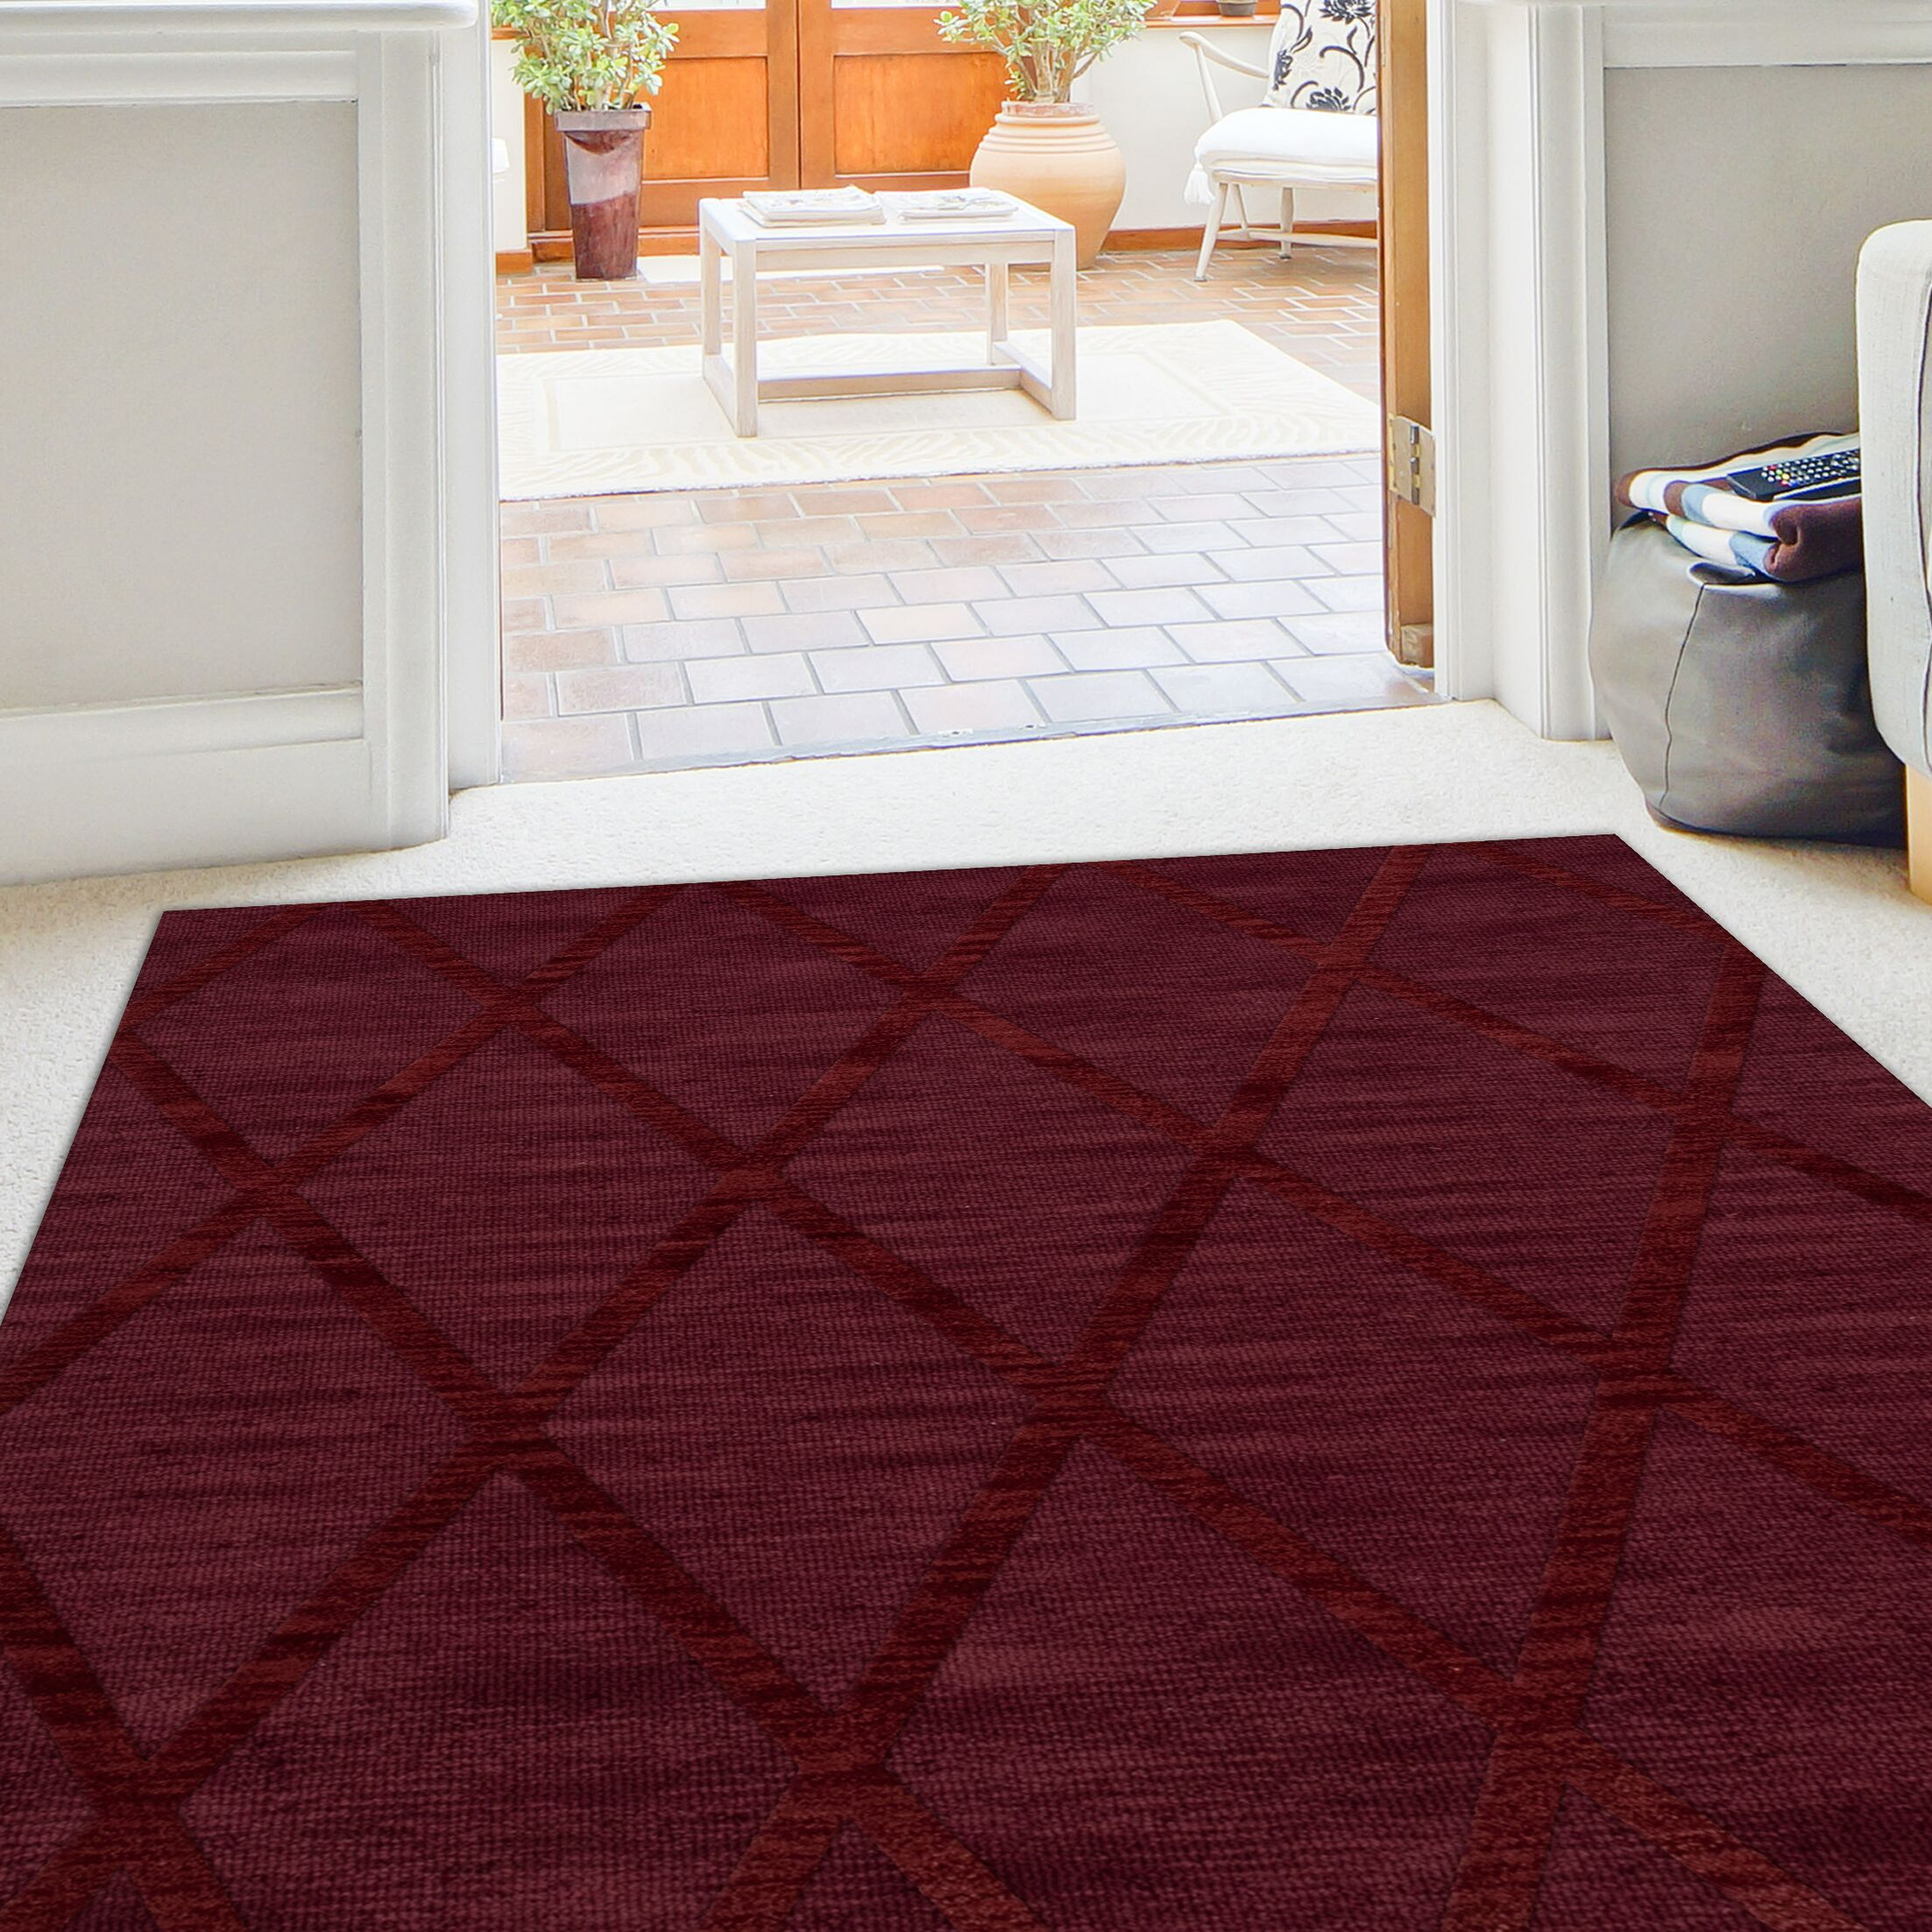 Dover Tufted Wool Burgundy Area Rug Rug Size: Rectangle 6' x 9'